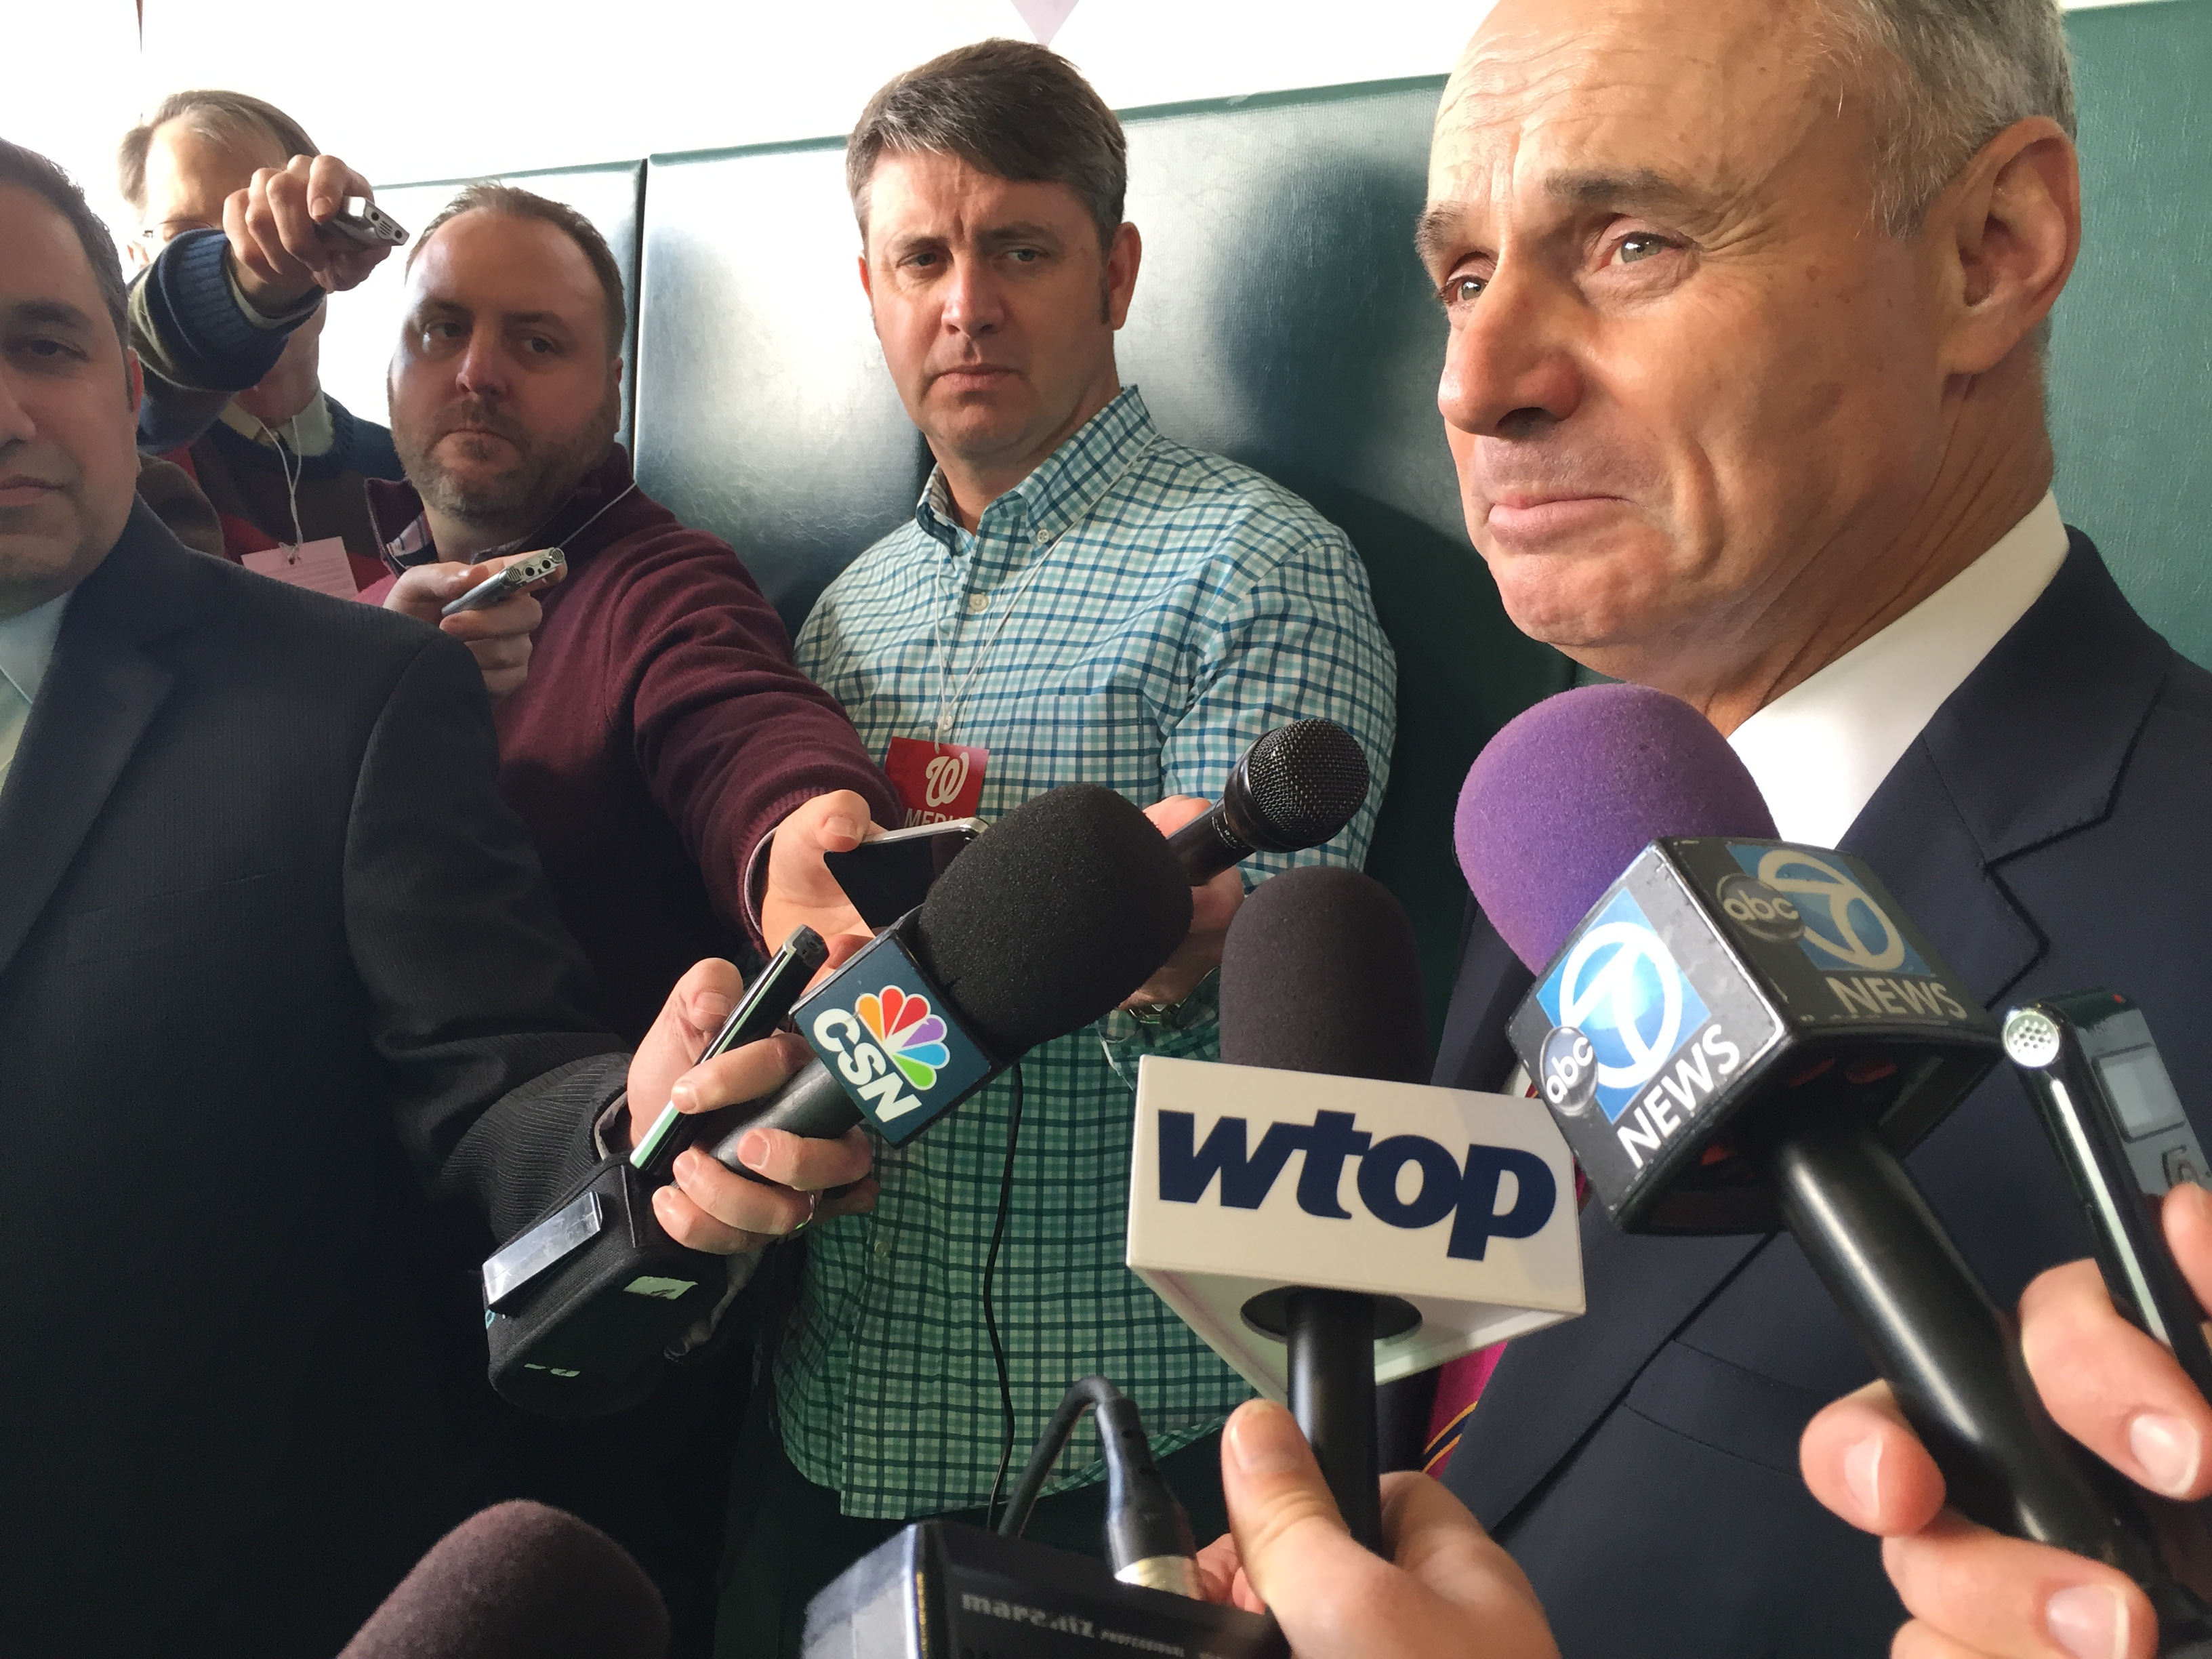 MLB Commissioner Robert Manfred tours Nationals Youth Baseball Academy